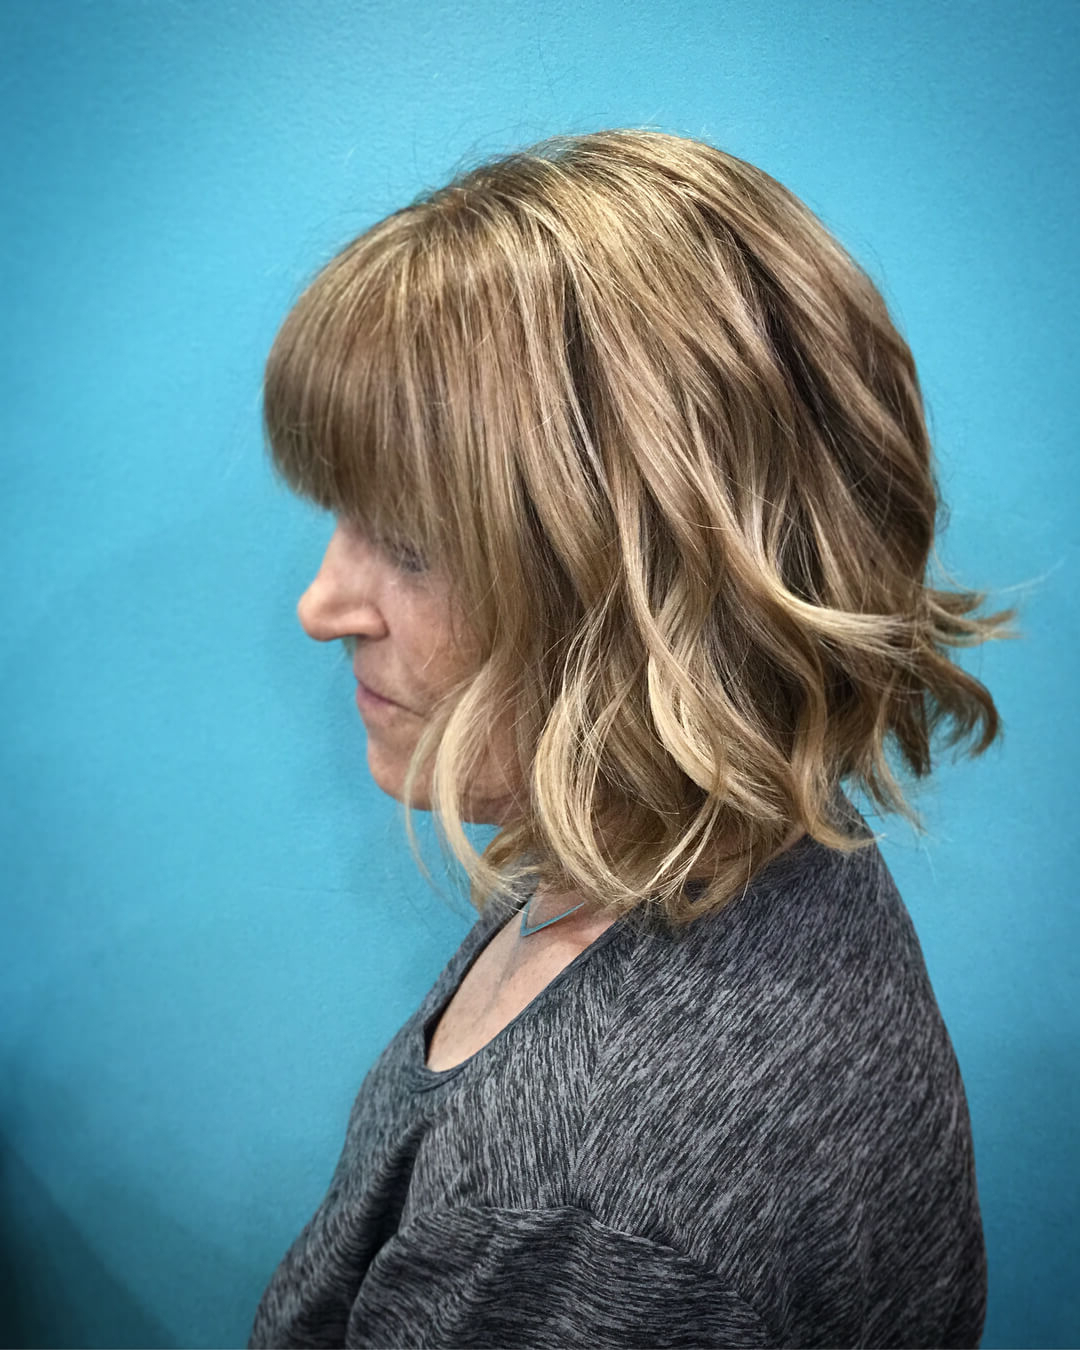 30 Various Bob Haircuts With Bangs – Get A New Look For Edgy Brunette Bob Hairstyles With Glossy Waves (View 4 of 25)